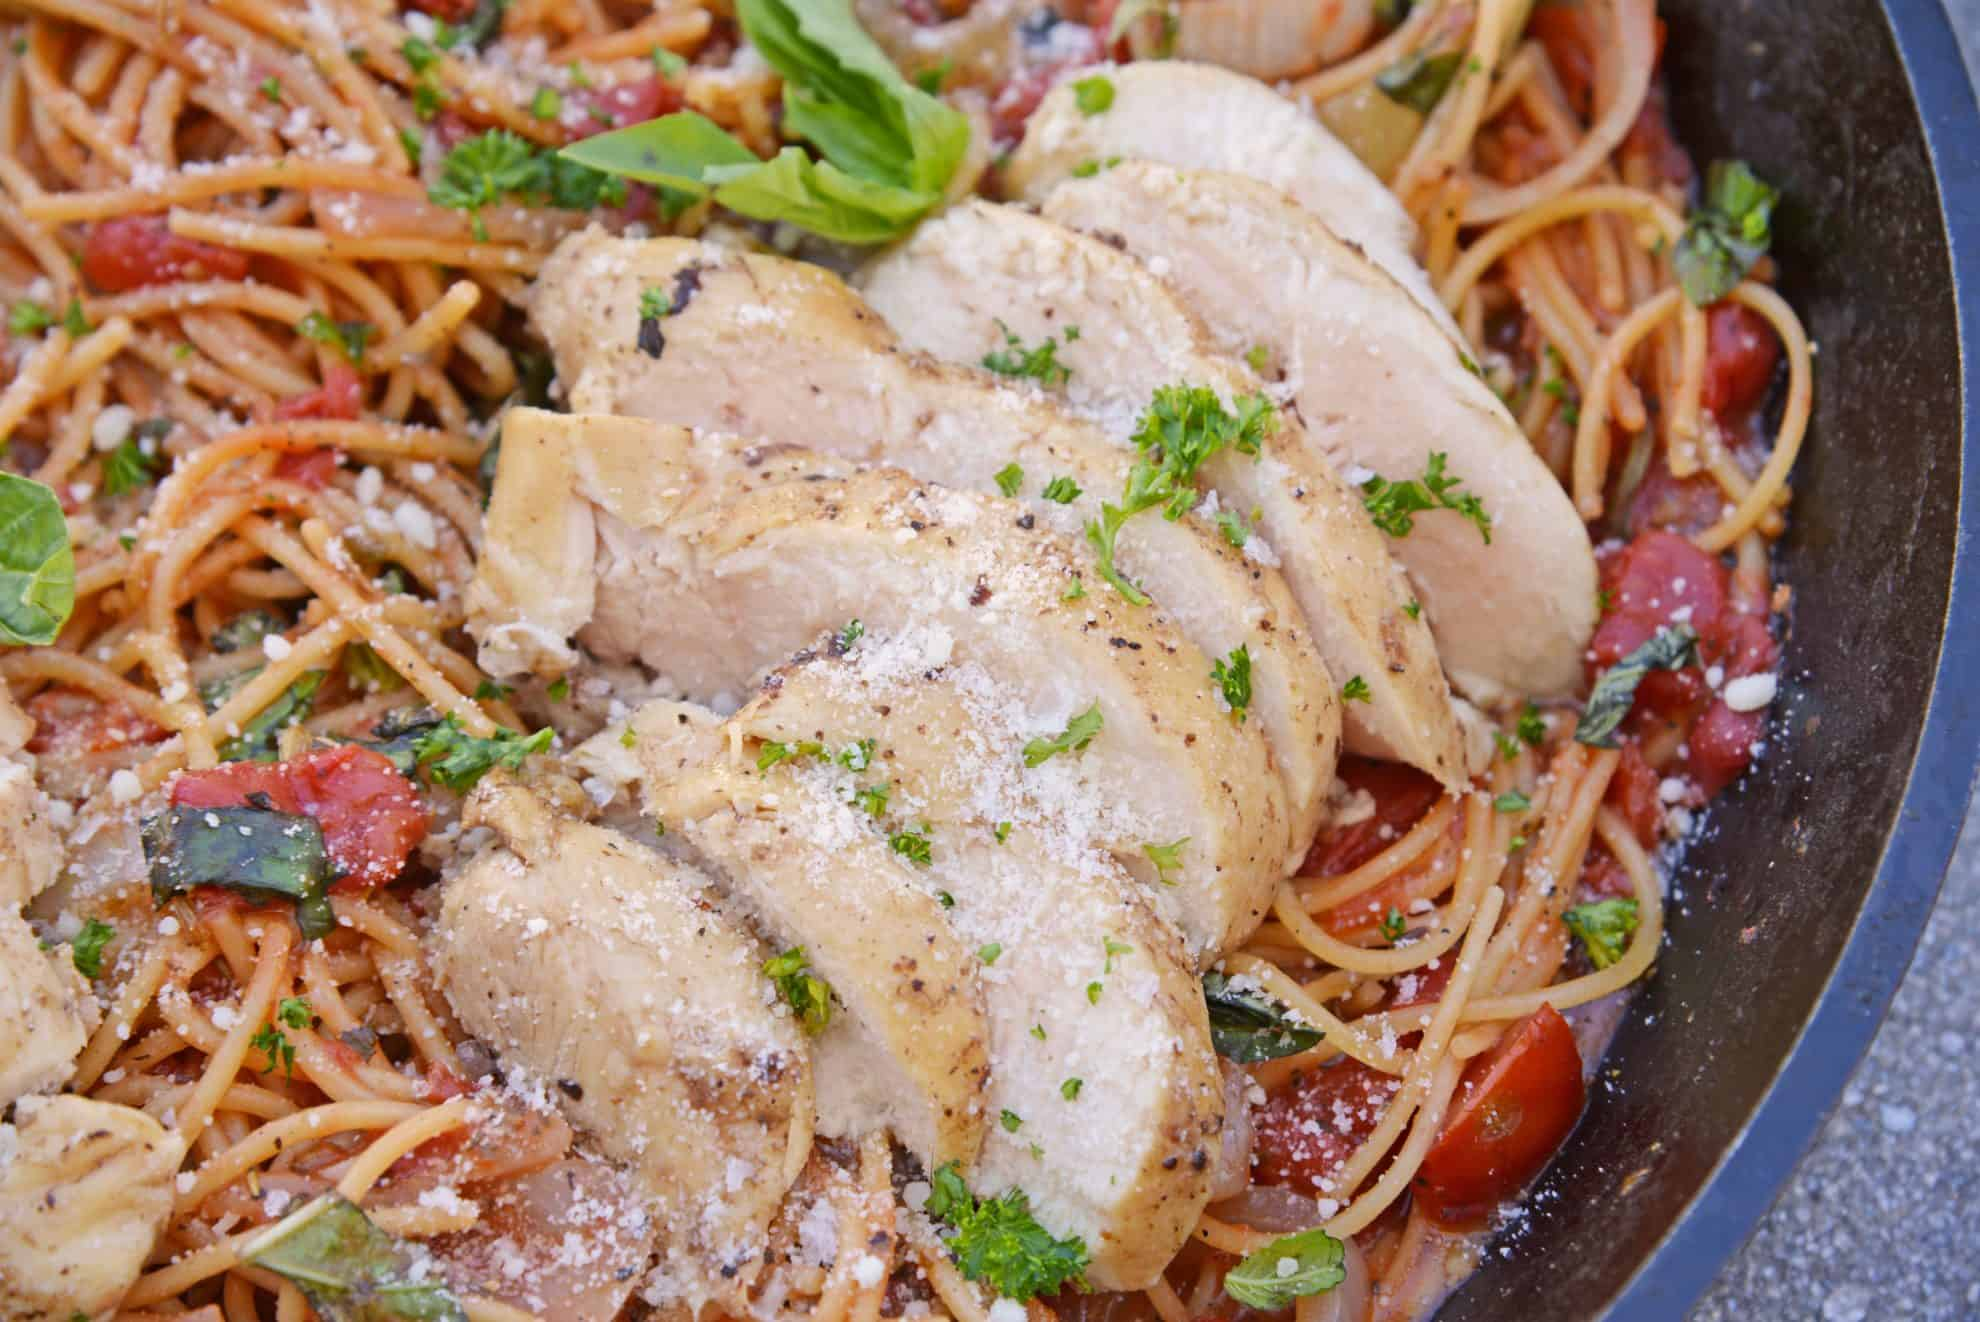 Sliced chicken in pasta with tomato and fresh basil